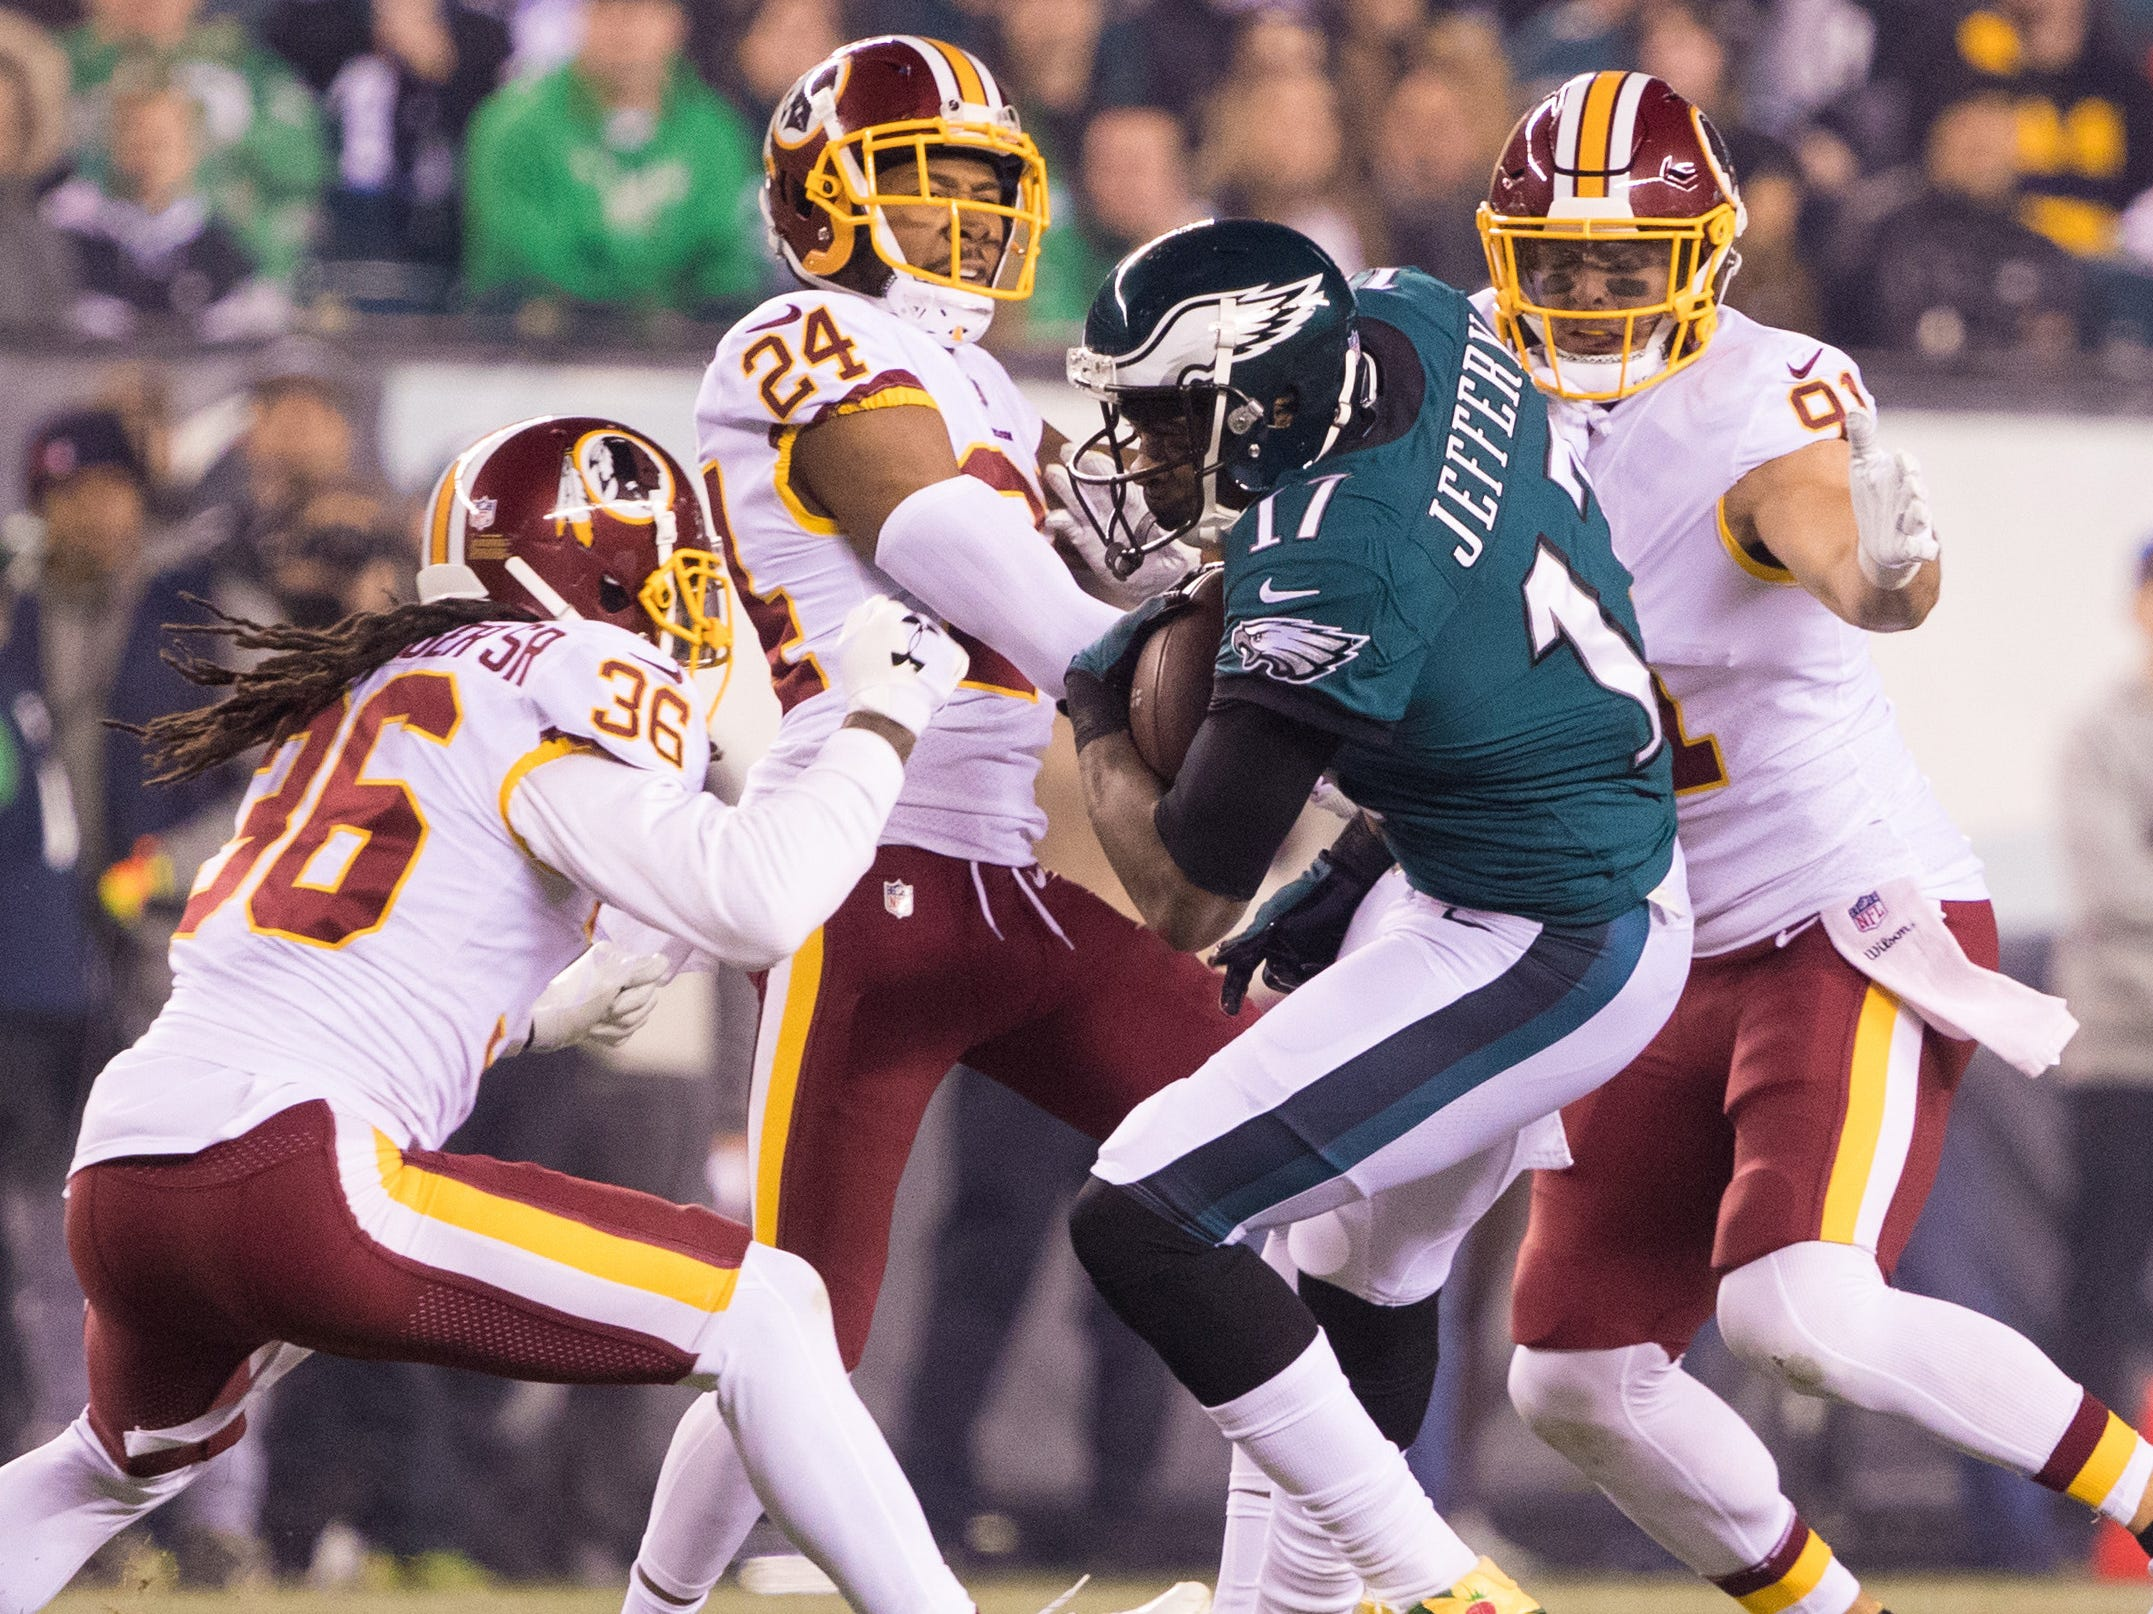 Philadelphia Eagles wide receiver Alshon Jeffery (17) makes a reception in front of Washington Redskins cornerback Josh Norman (24) and free safety D.J. Swearinger (36) during the first quarter at Lincoln Financial Field.